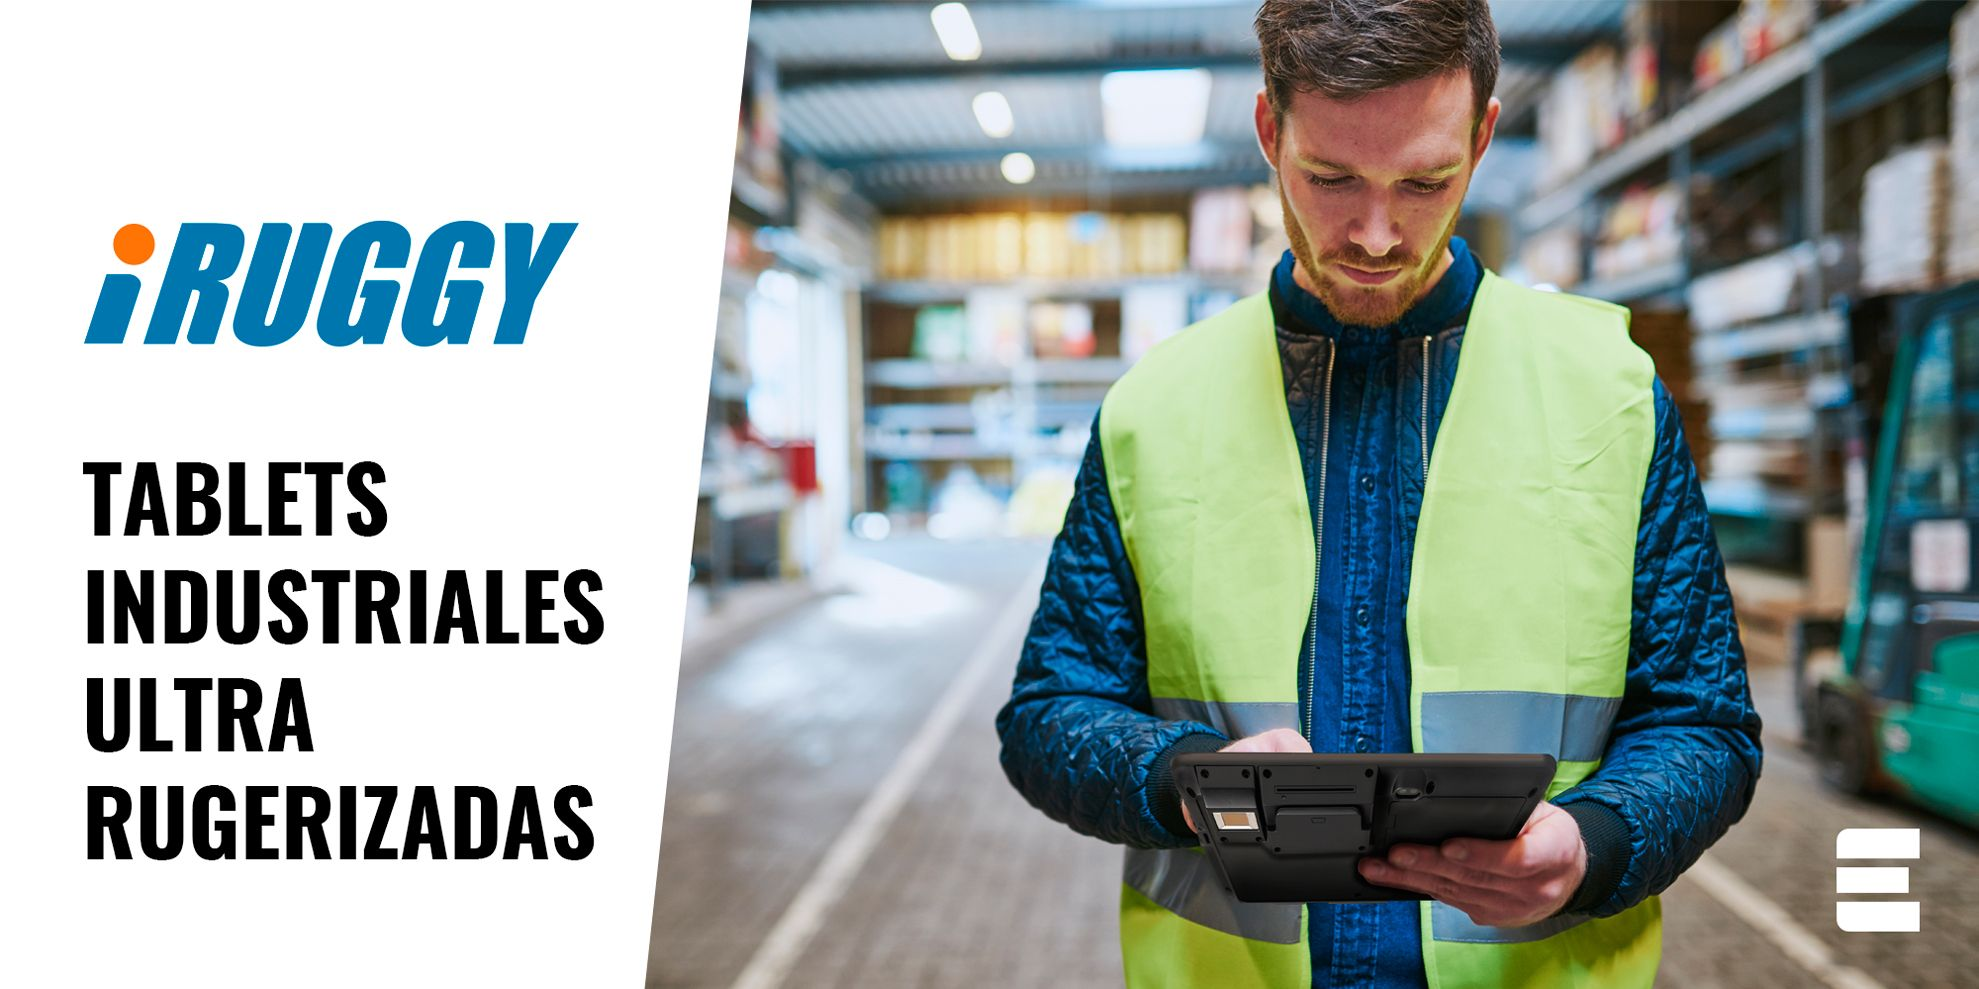 Tablets industriales iRuggy - ELSI